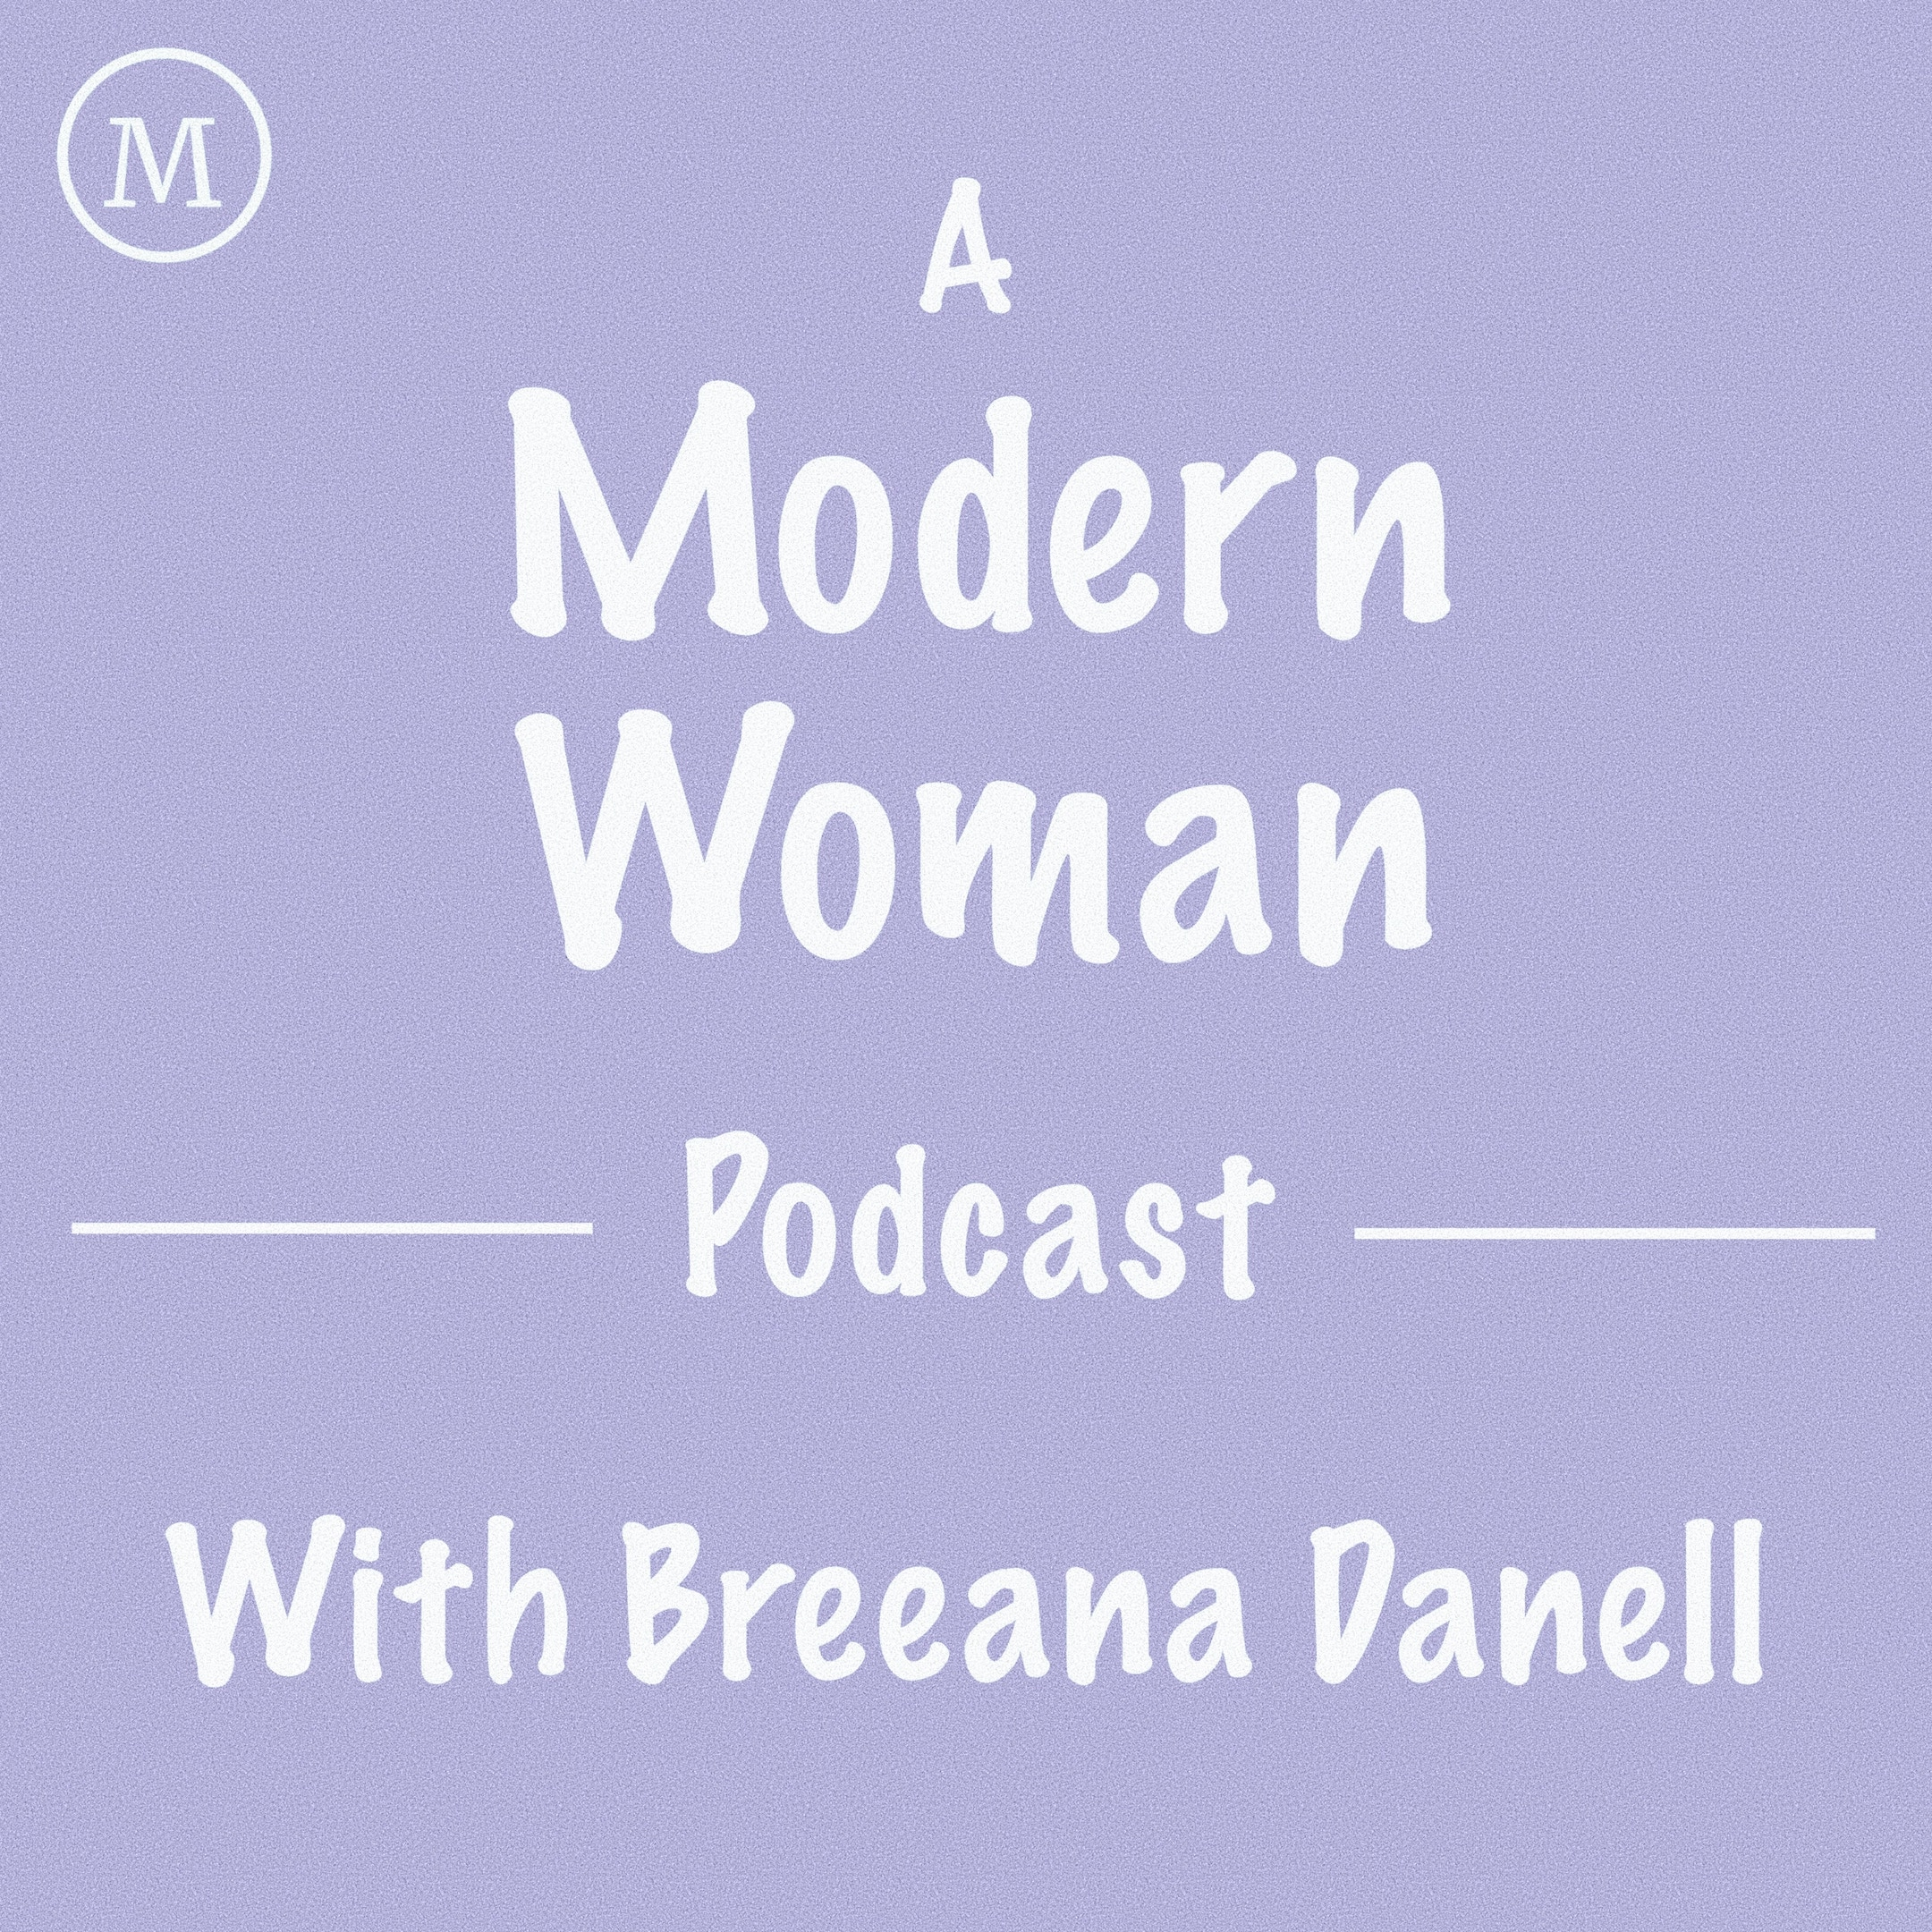 Artwork for podcast A Modern Woman Podcast